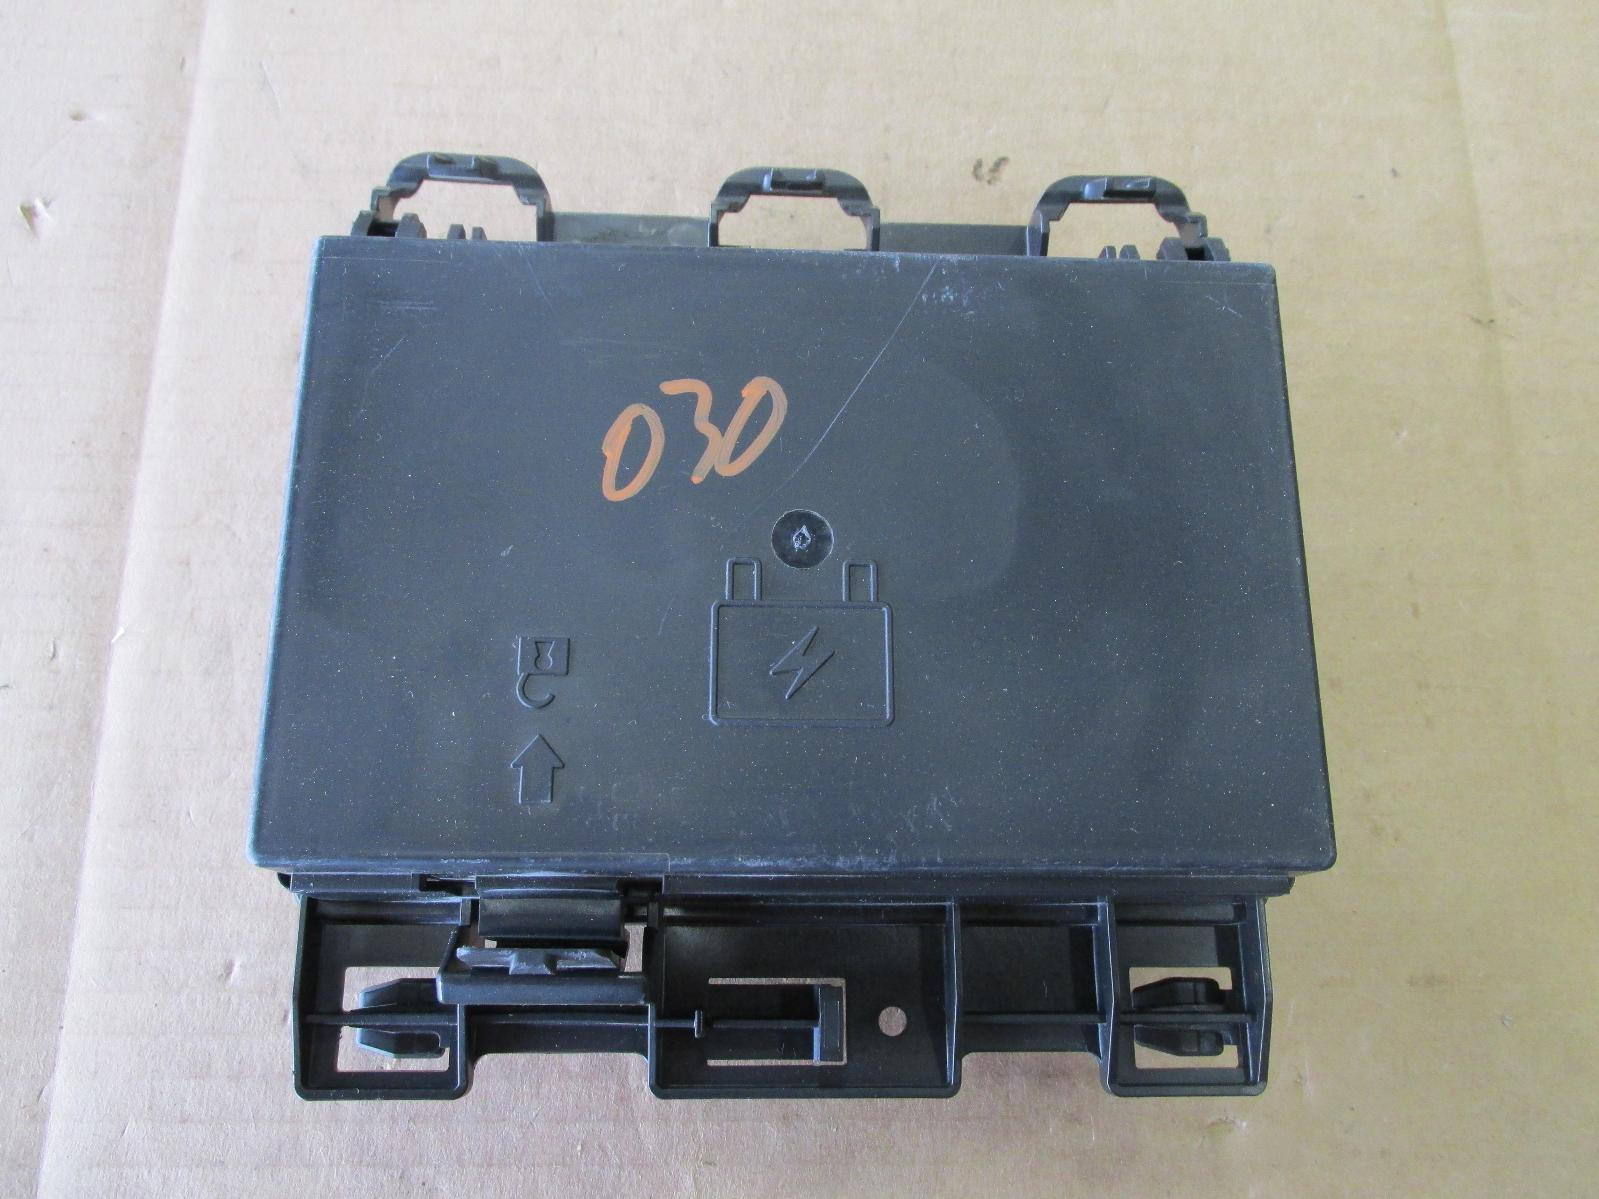 Chevy Malibu Fuse Box Wiring Schematic 2019 2004 Chevrolet 2007 2008 Oem 15291746 Ebay Location